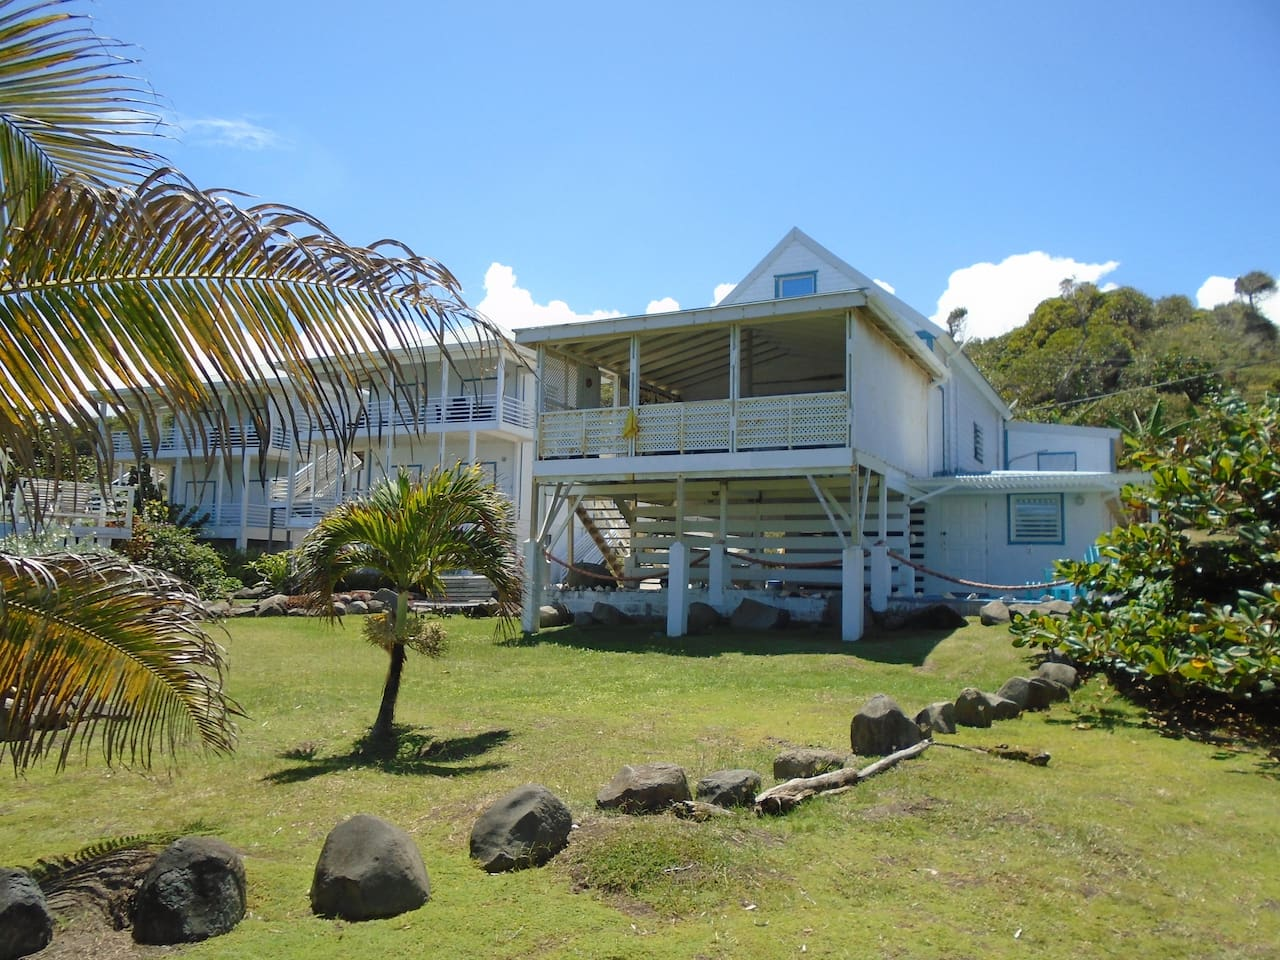 MoonFish Villas, viewed from the gardens!